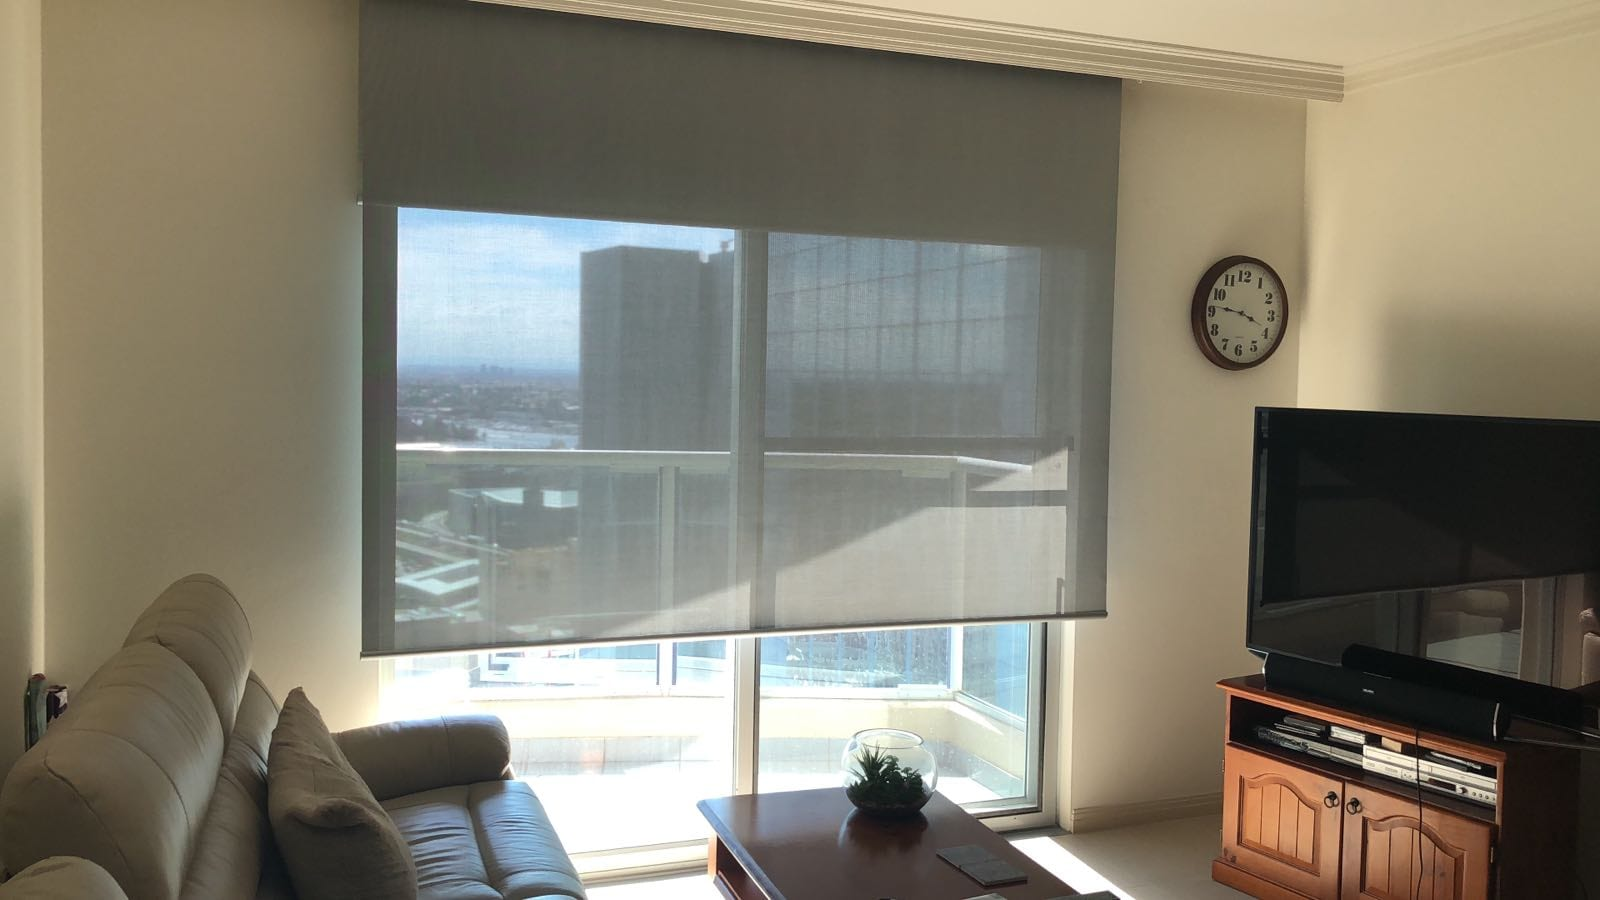 How To Find The Best Roller Blinds In Balgowlah?